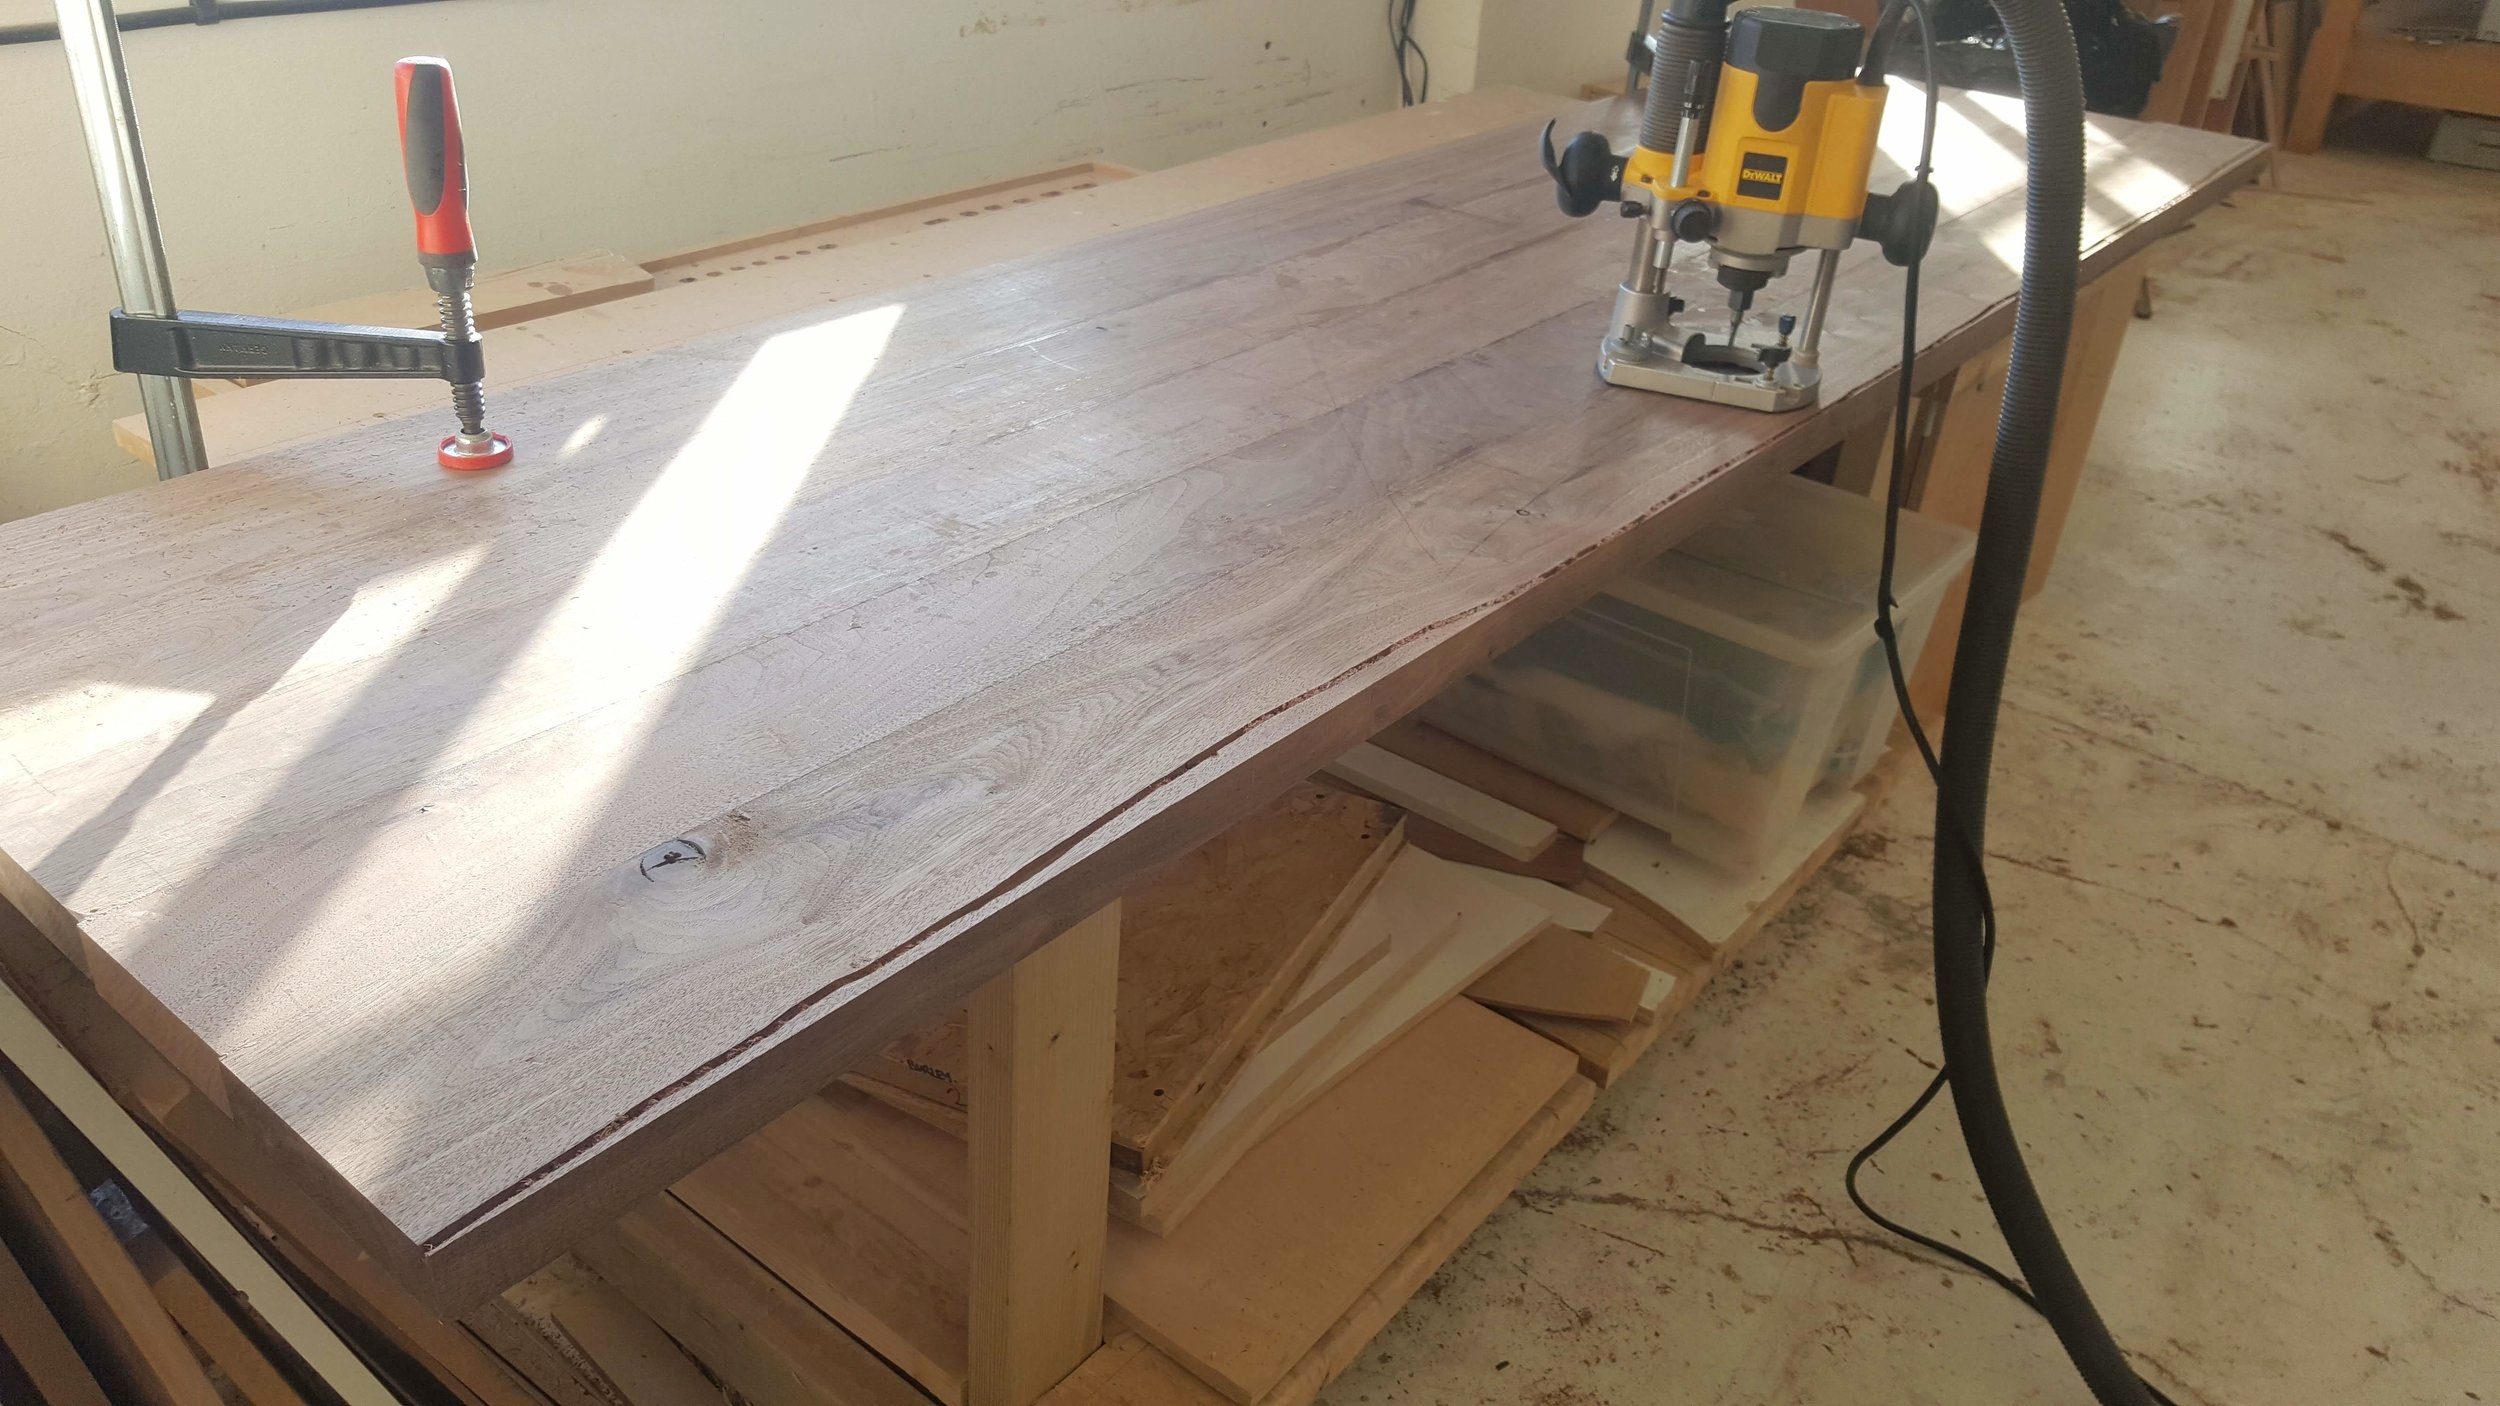 Heliconia_Furniturte_WalnutMaple_DiningTable_waveTemplating (1).jpg